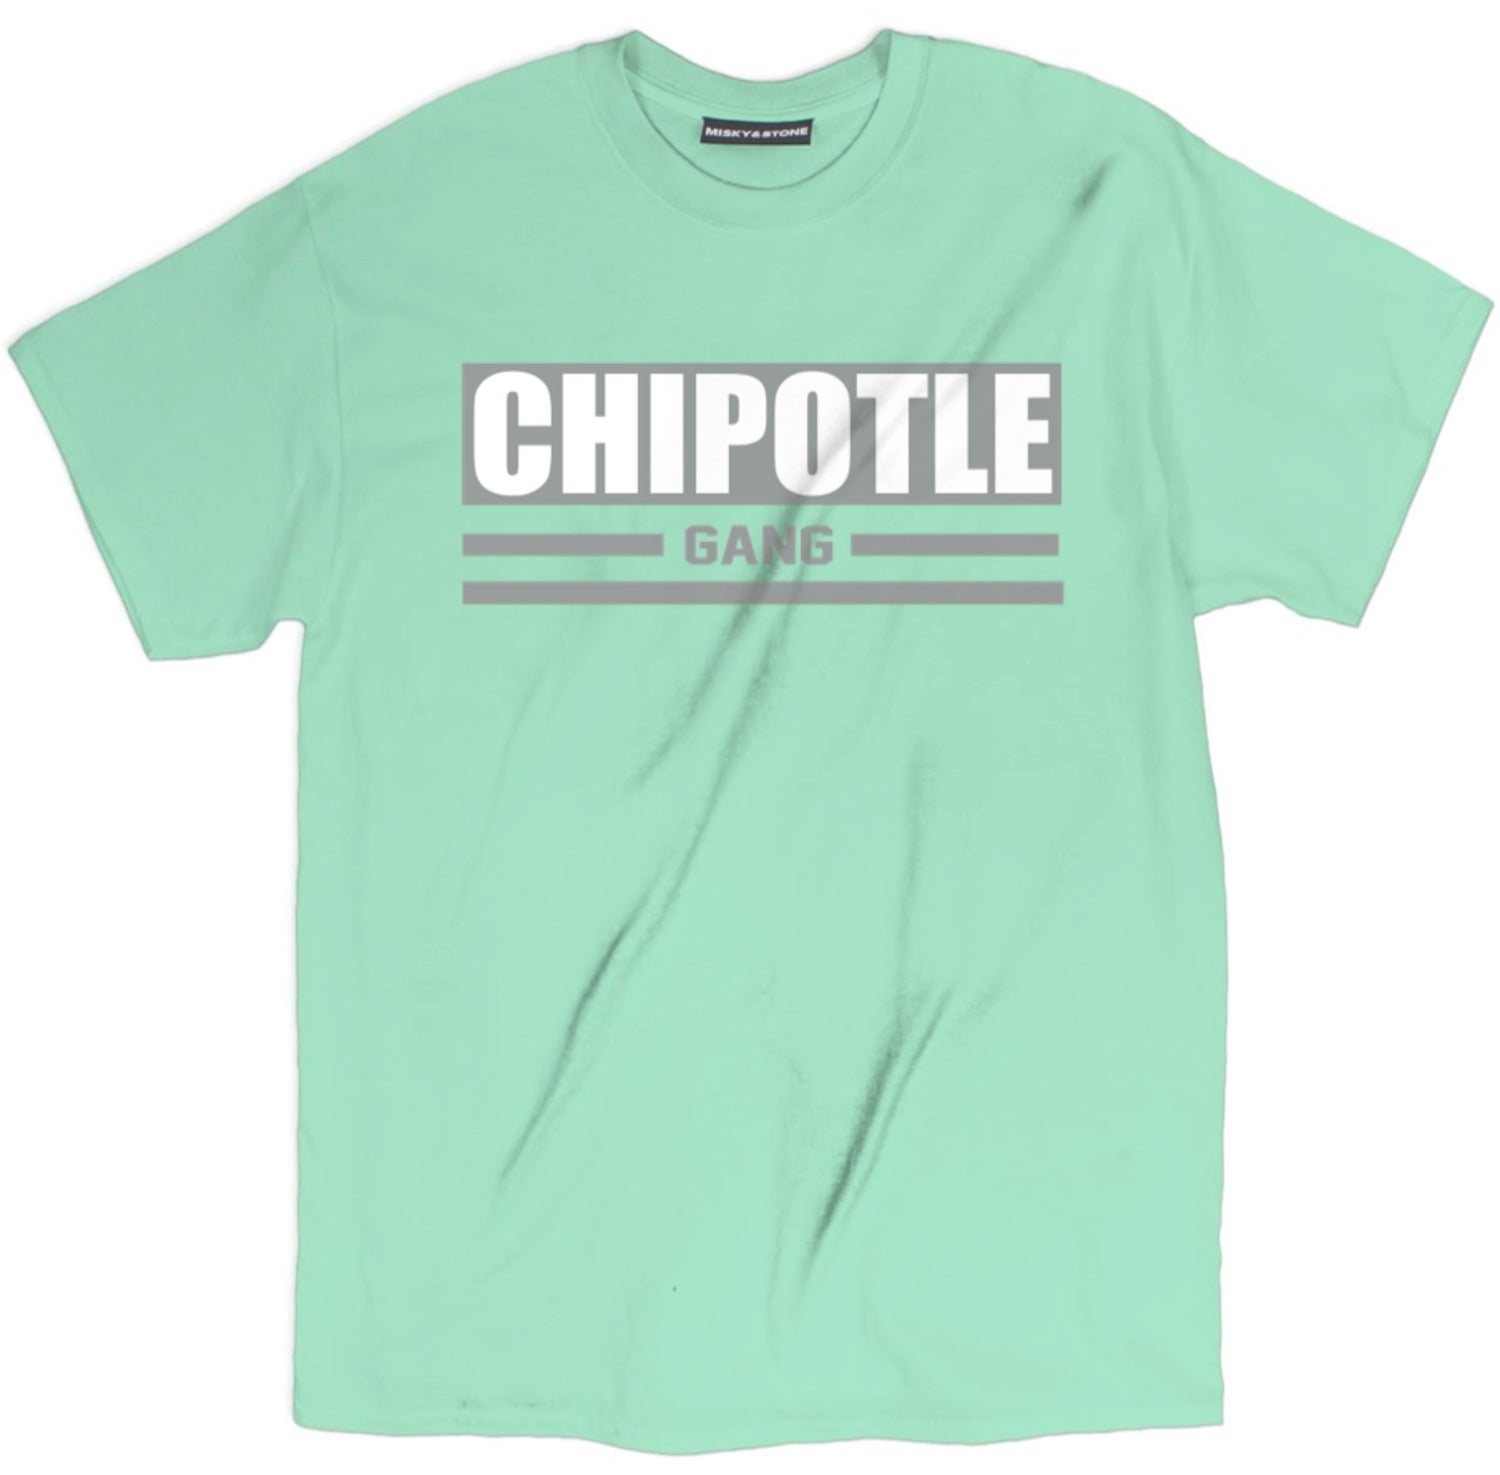 Chipotle Gang Shirt